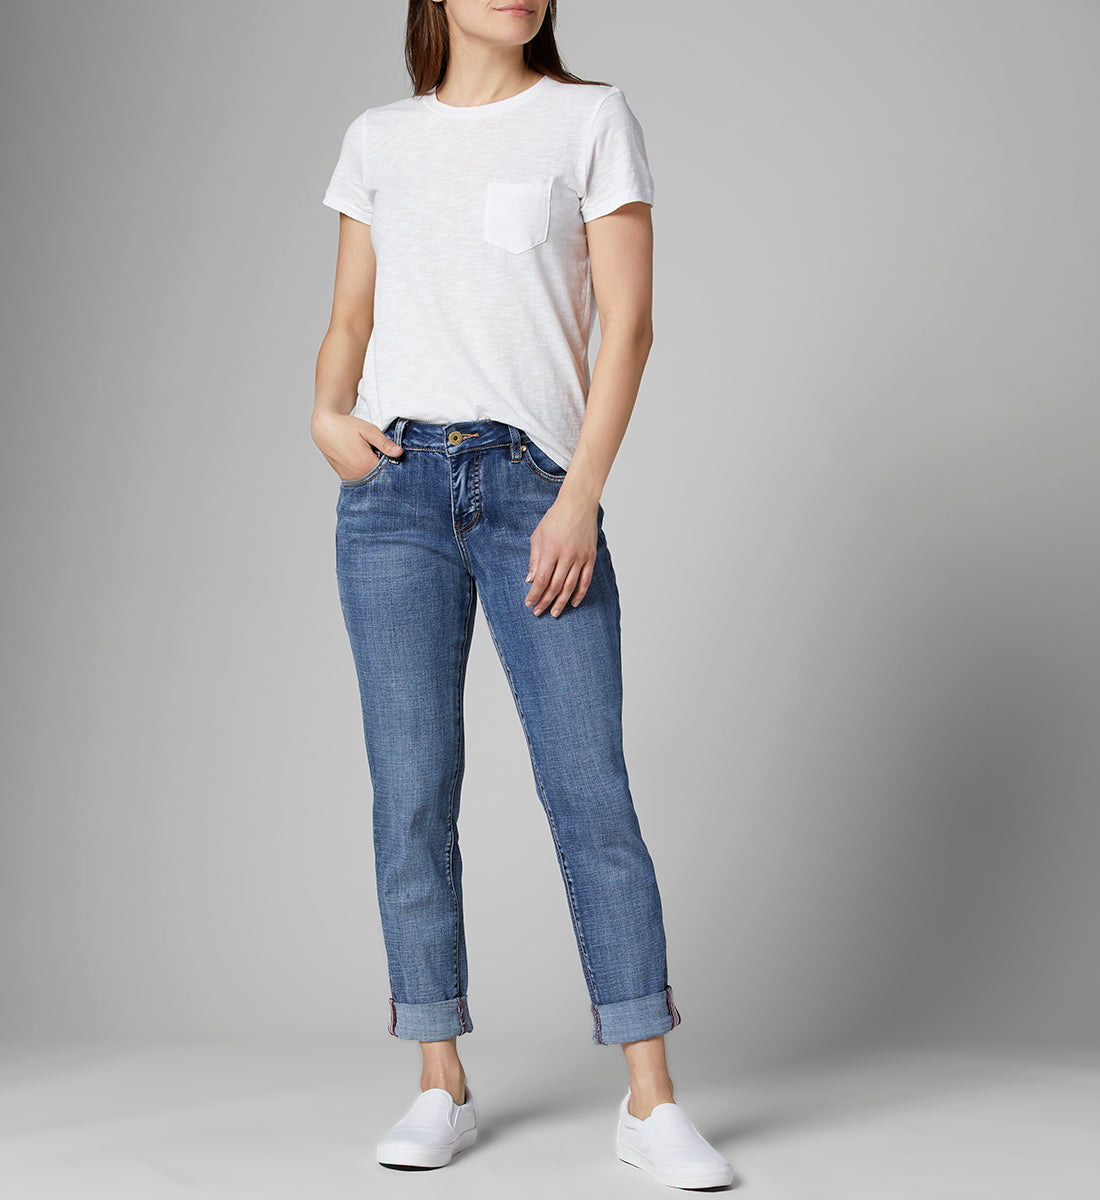 Jag-Carter Mid Rise Girlfriend Jeans